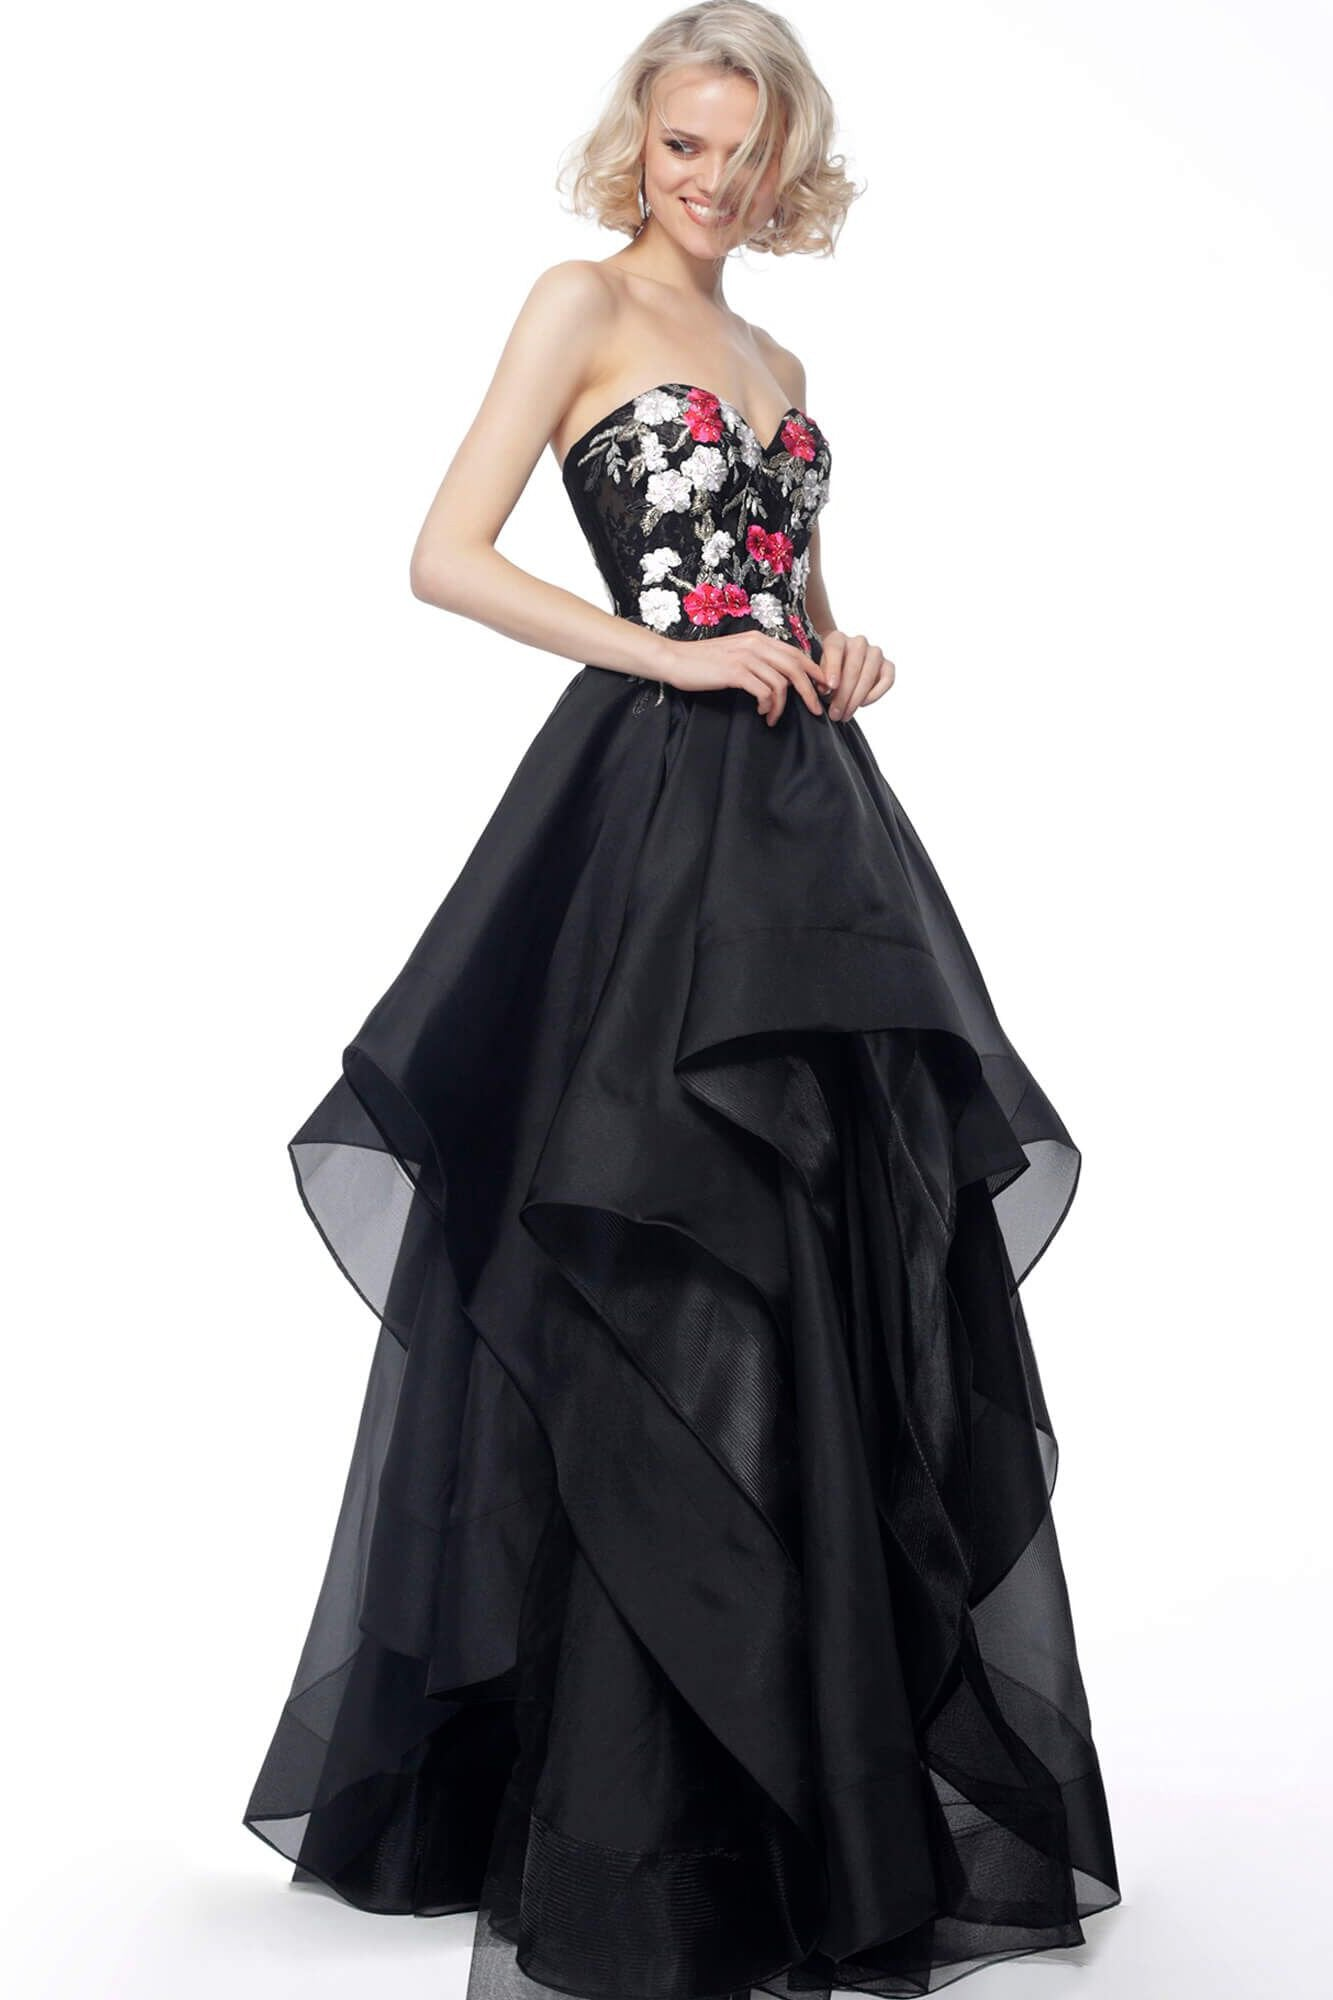 Jovani - 67206 Strapless Ruffled Skirt A-line Dress In Black and Multi